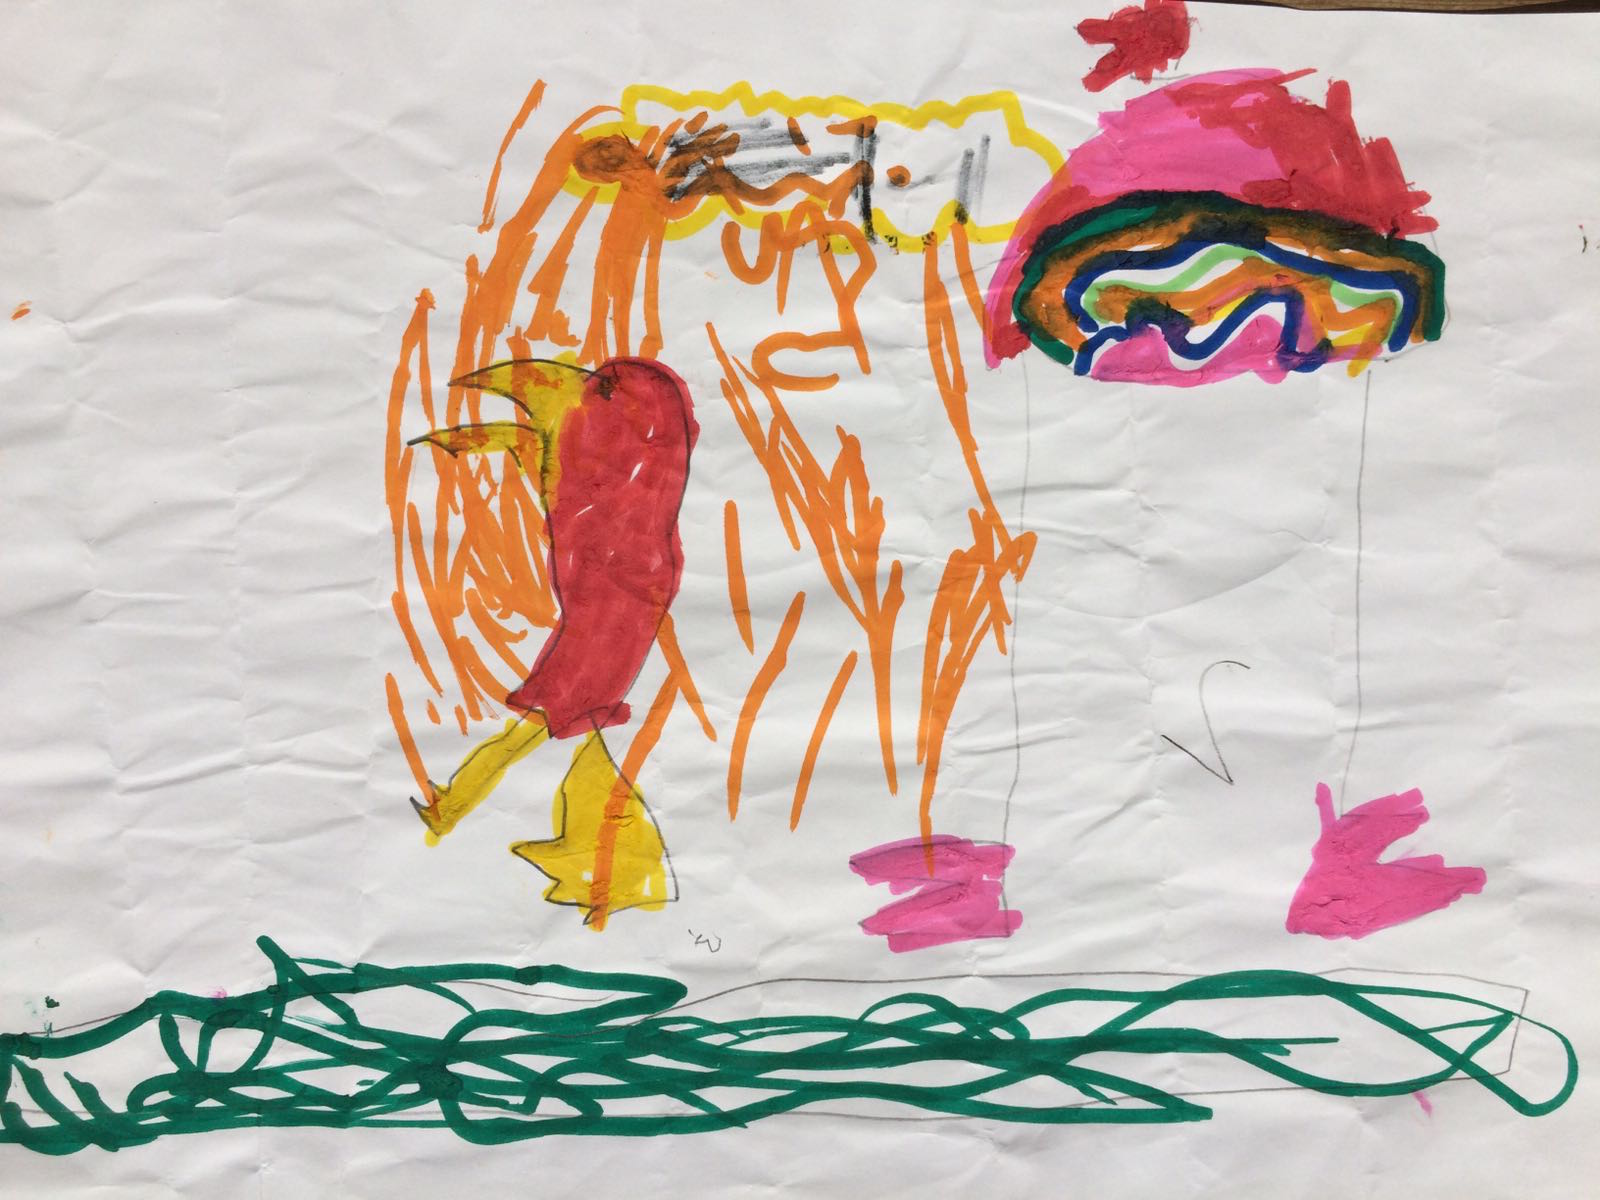 Parrot and rainbow, by Connor